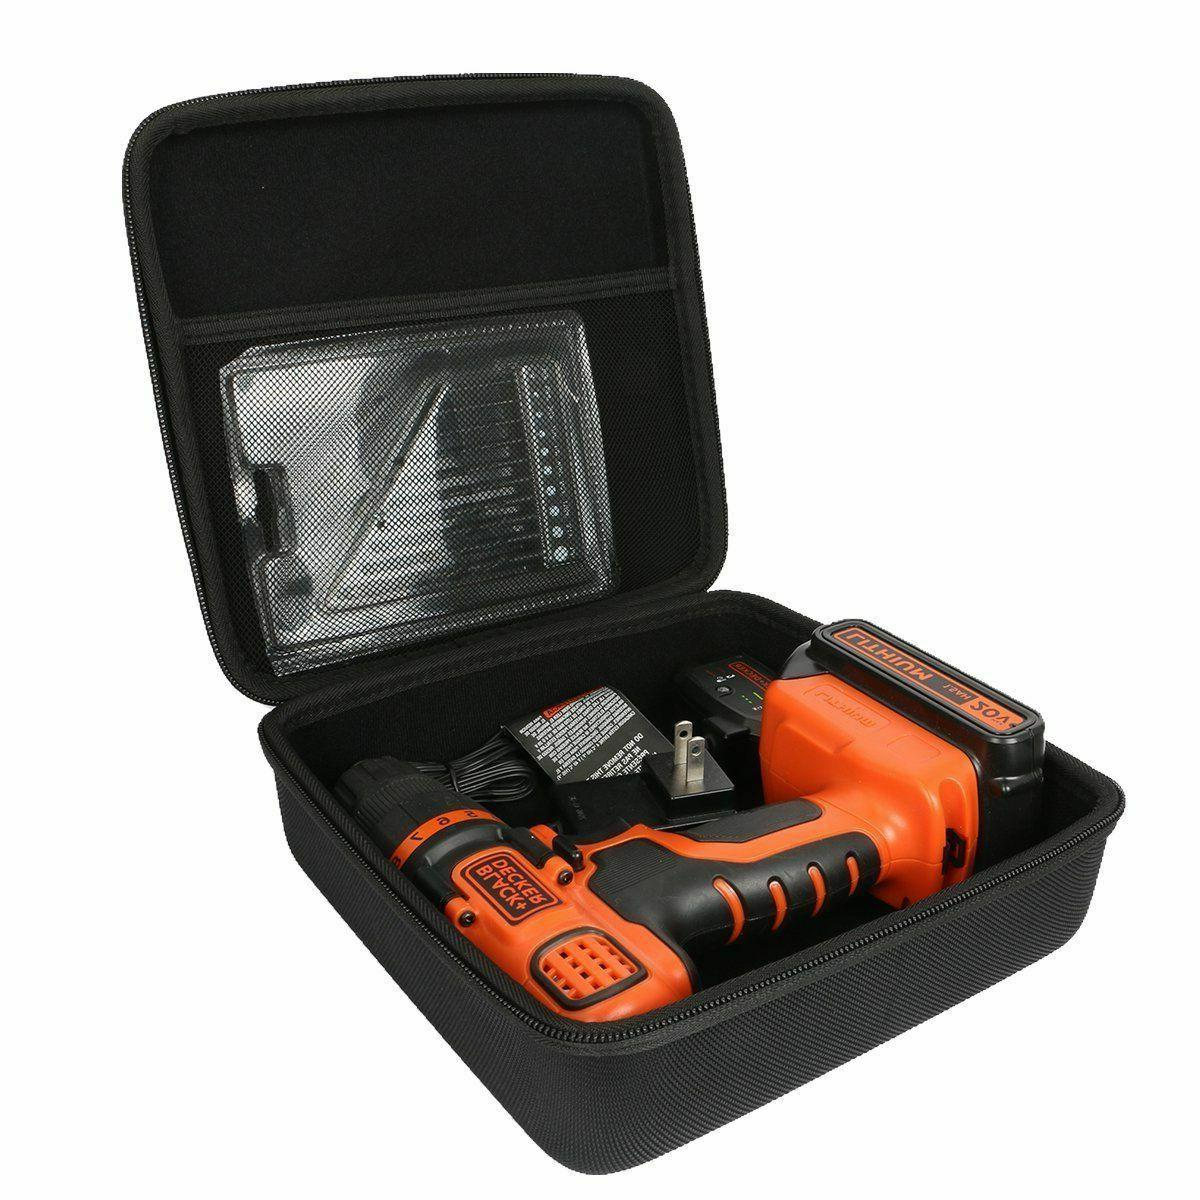 Hard Case Black For BLACK+DECKER Lithium Ion Cordless Drill